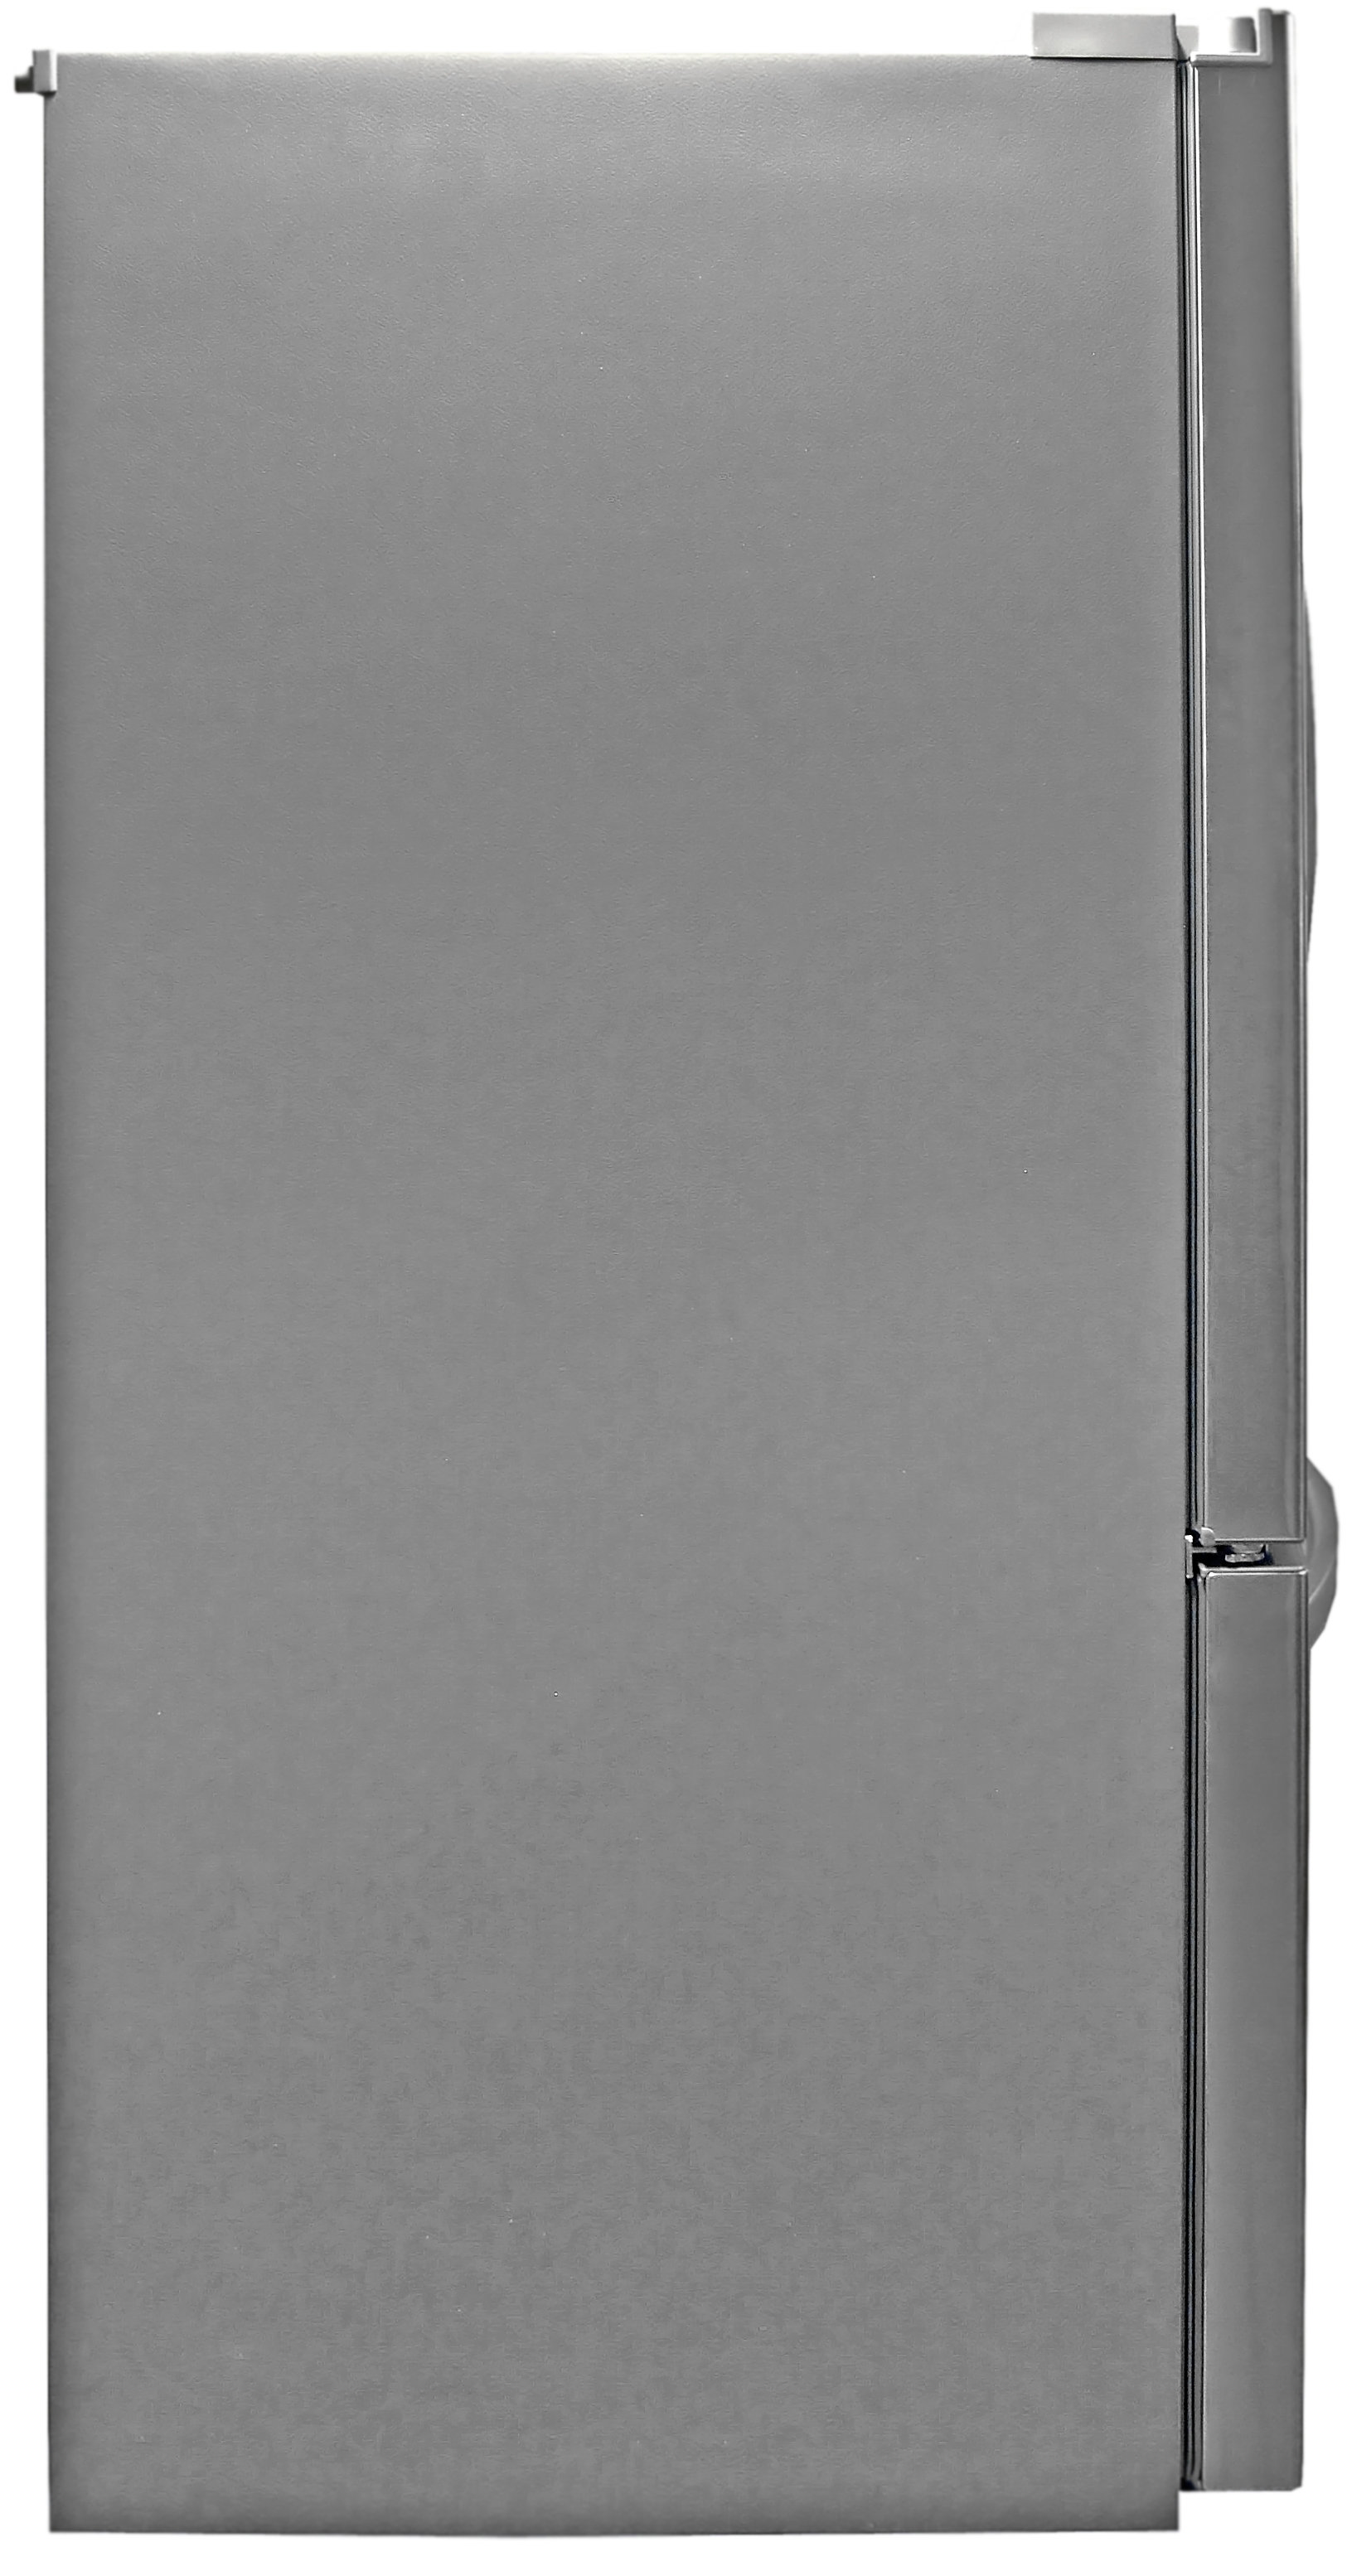 The LG LFX32945ST's grey sides are commonplace for stainless fridges.